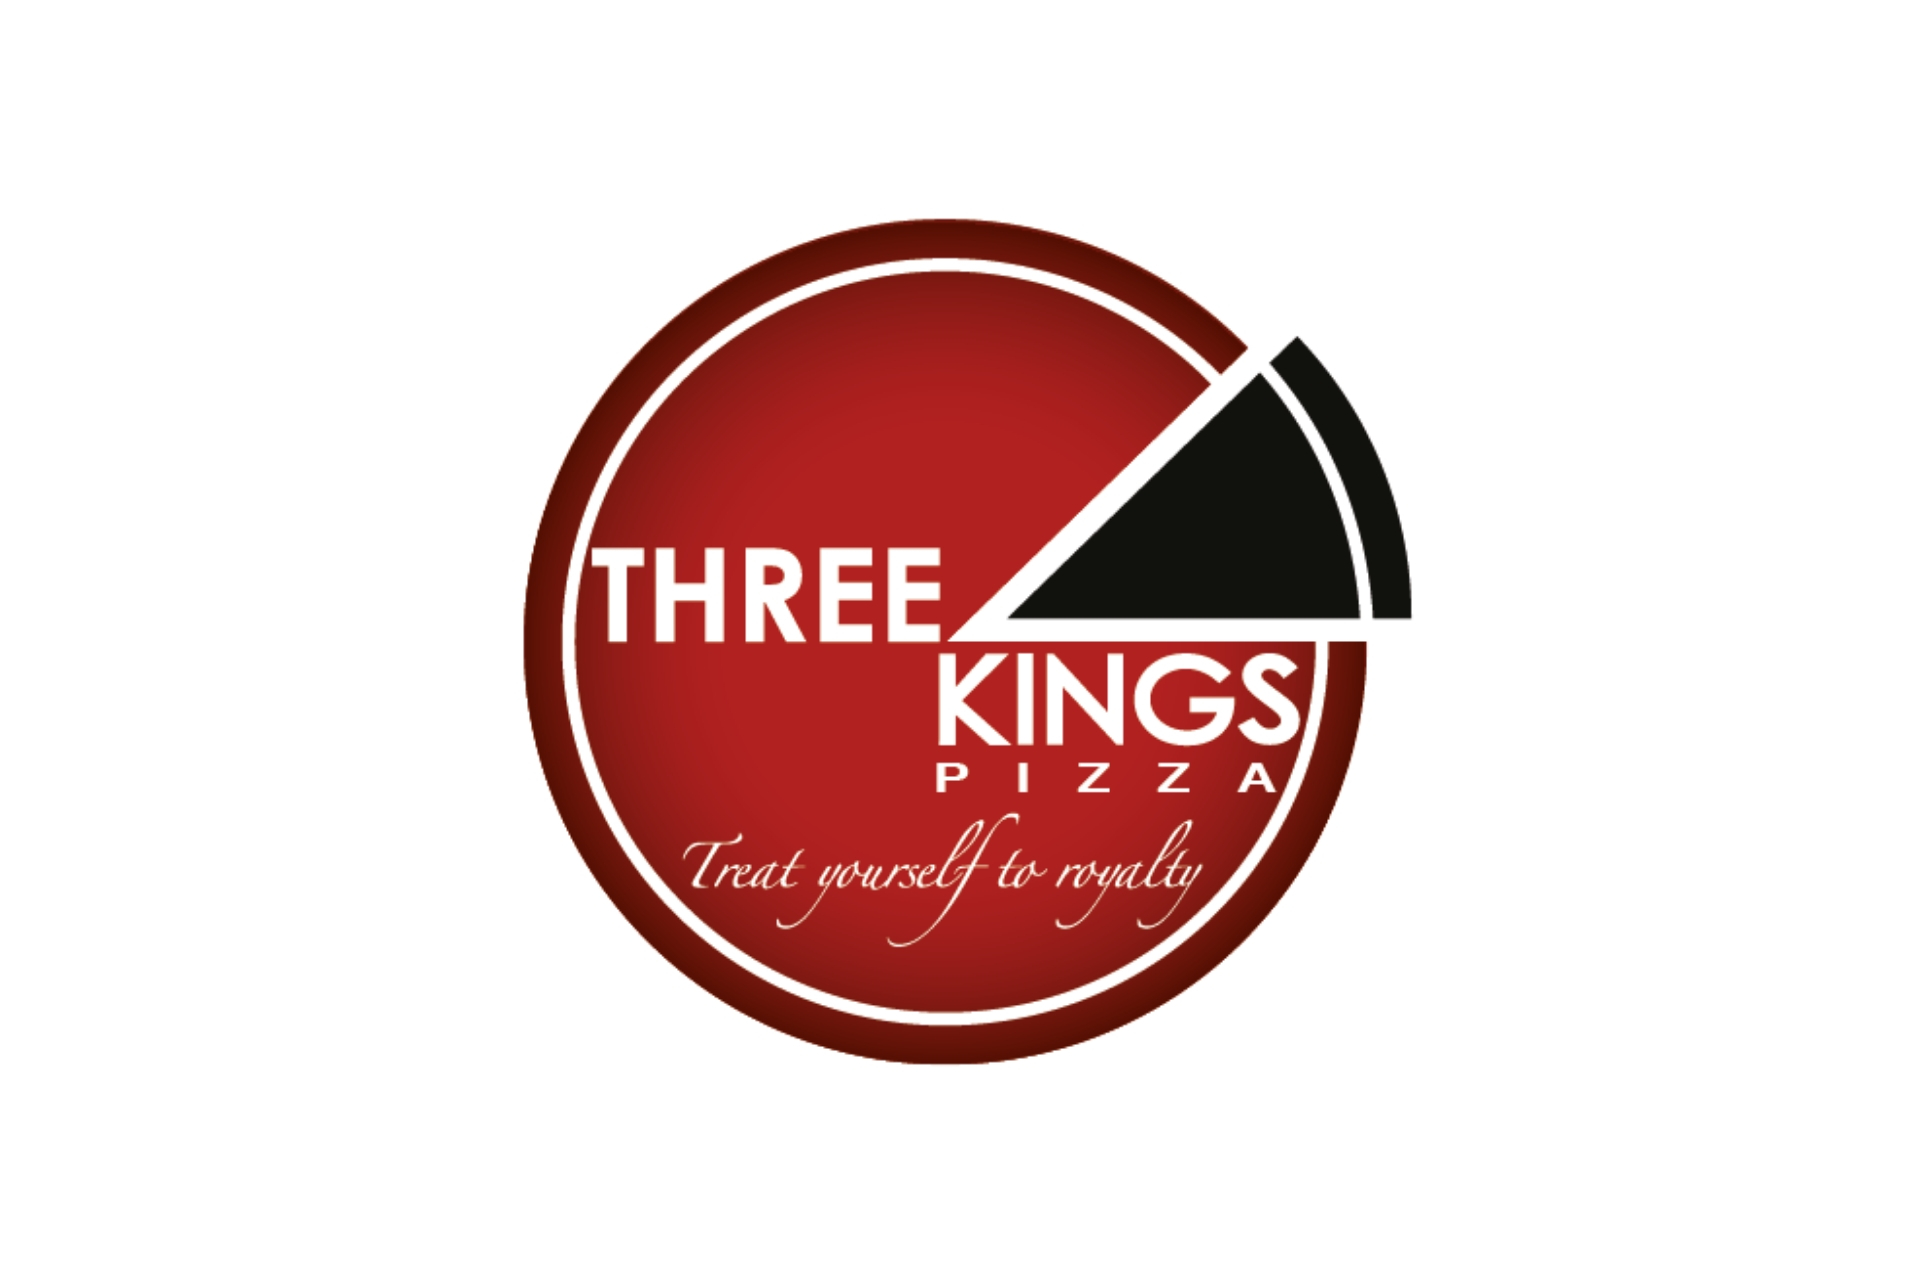 Three Kings Pizzas Upper Coomera Coomera City Centre